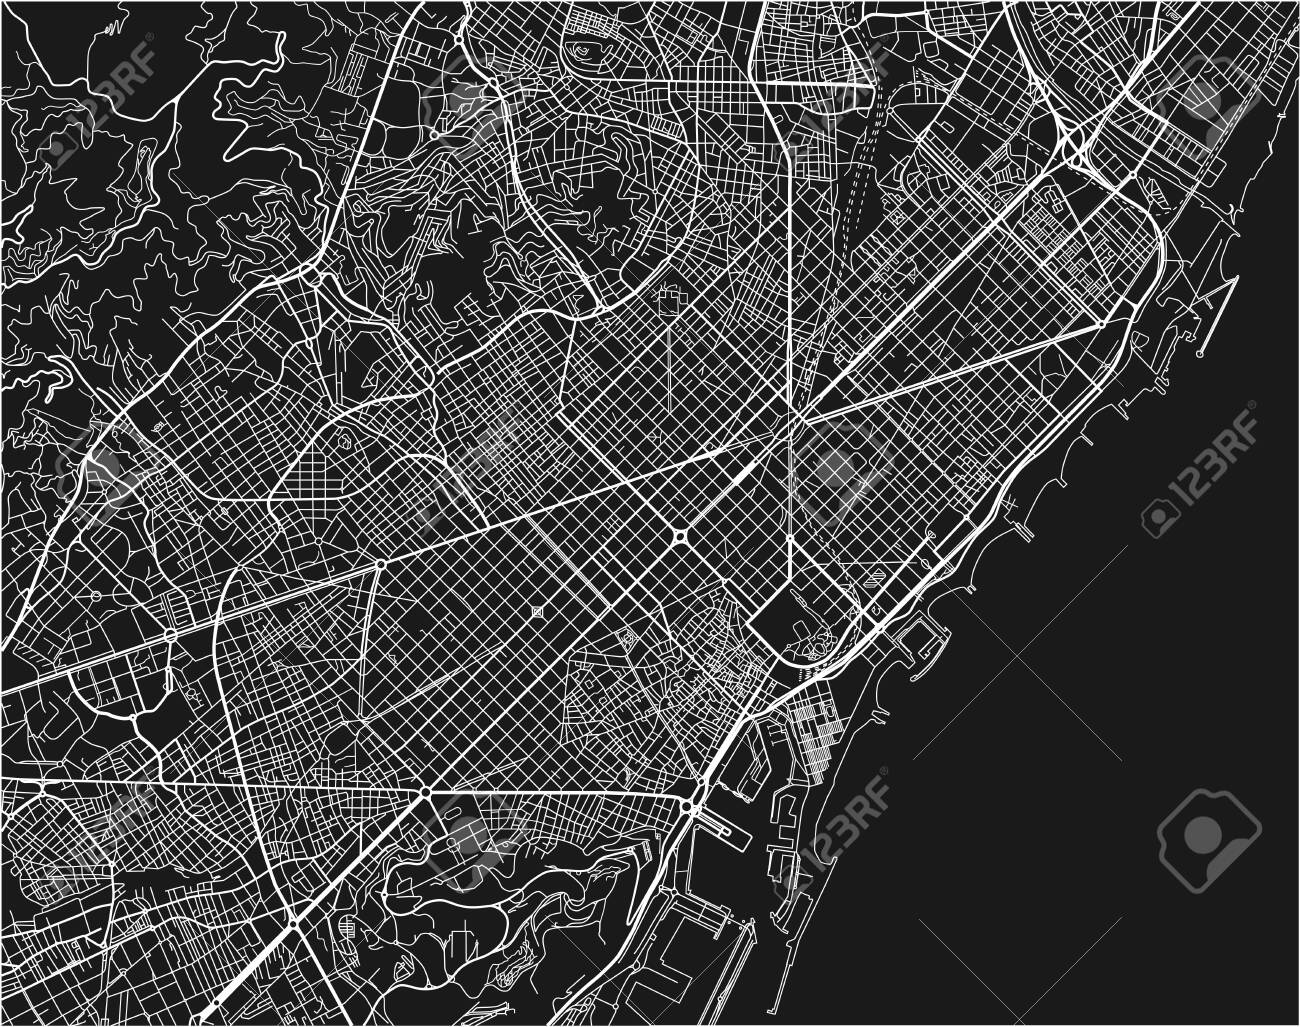 Black and white vector city map of Barcelona with well organized.. on map of kiev city, map of zhuhai city, map spain city, map of malta city, map of danang city, map of ulan bator city, map of juba city, map of switzerland city, map of bucharest city, map of chiang rai city, map of rio de janeiro city, map of quito city, about barcelona city, map of nagoya city, map of sharjah city, map of toledo city, map of bulawayo city, map of dallas city, map of kunming city, map of queen city,